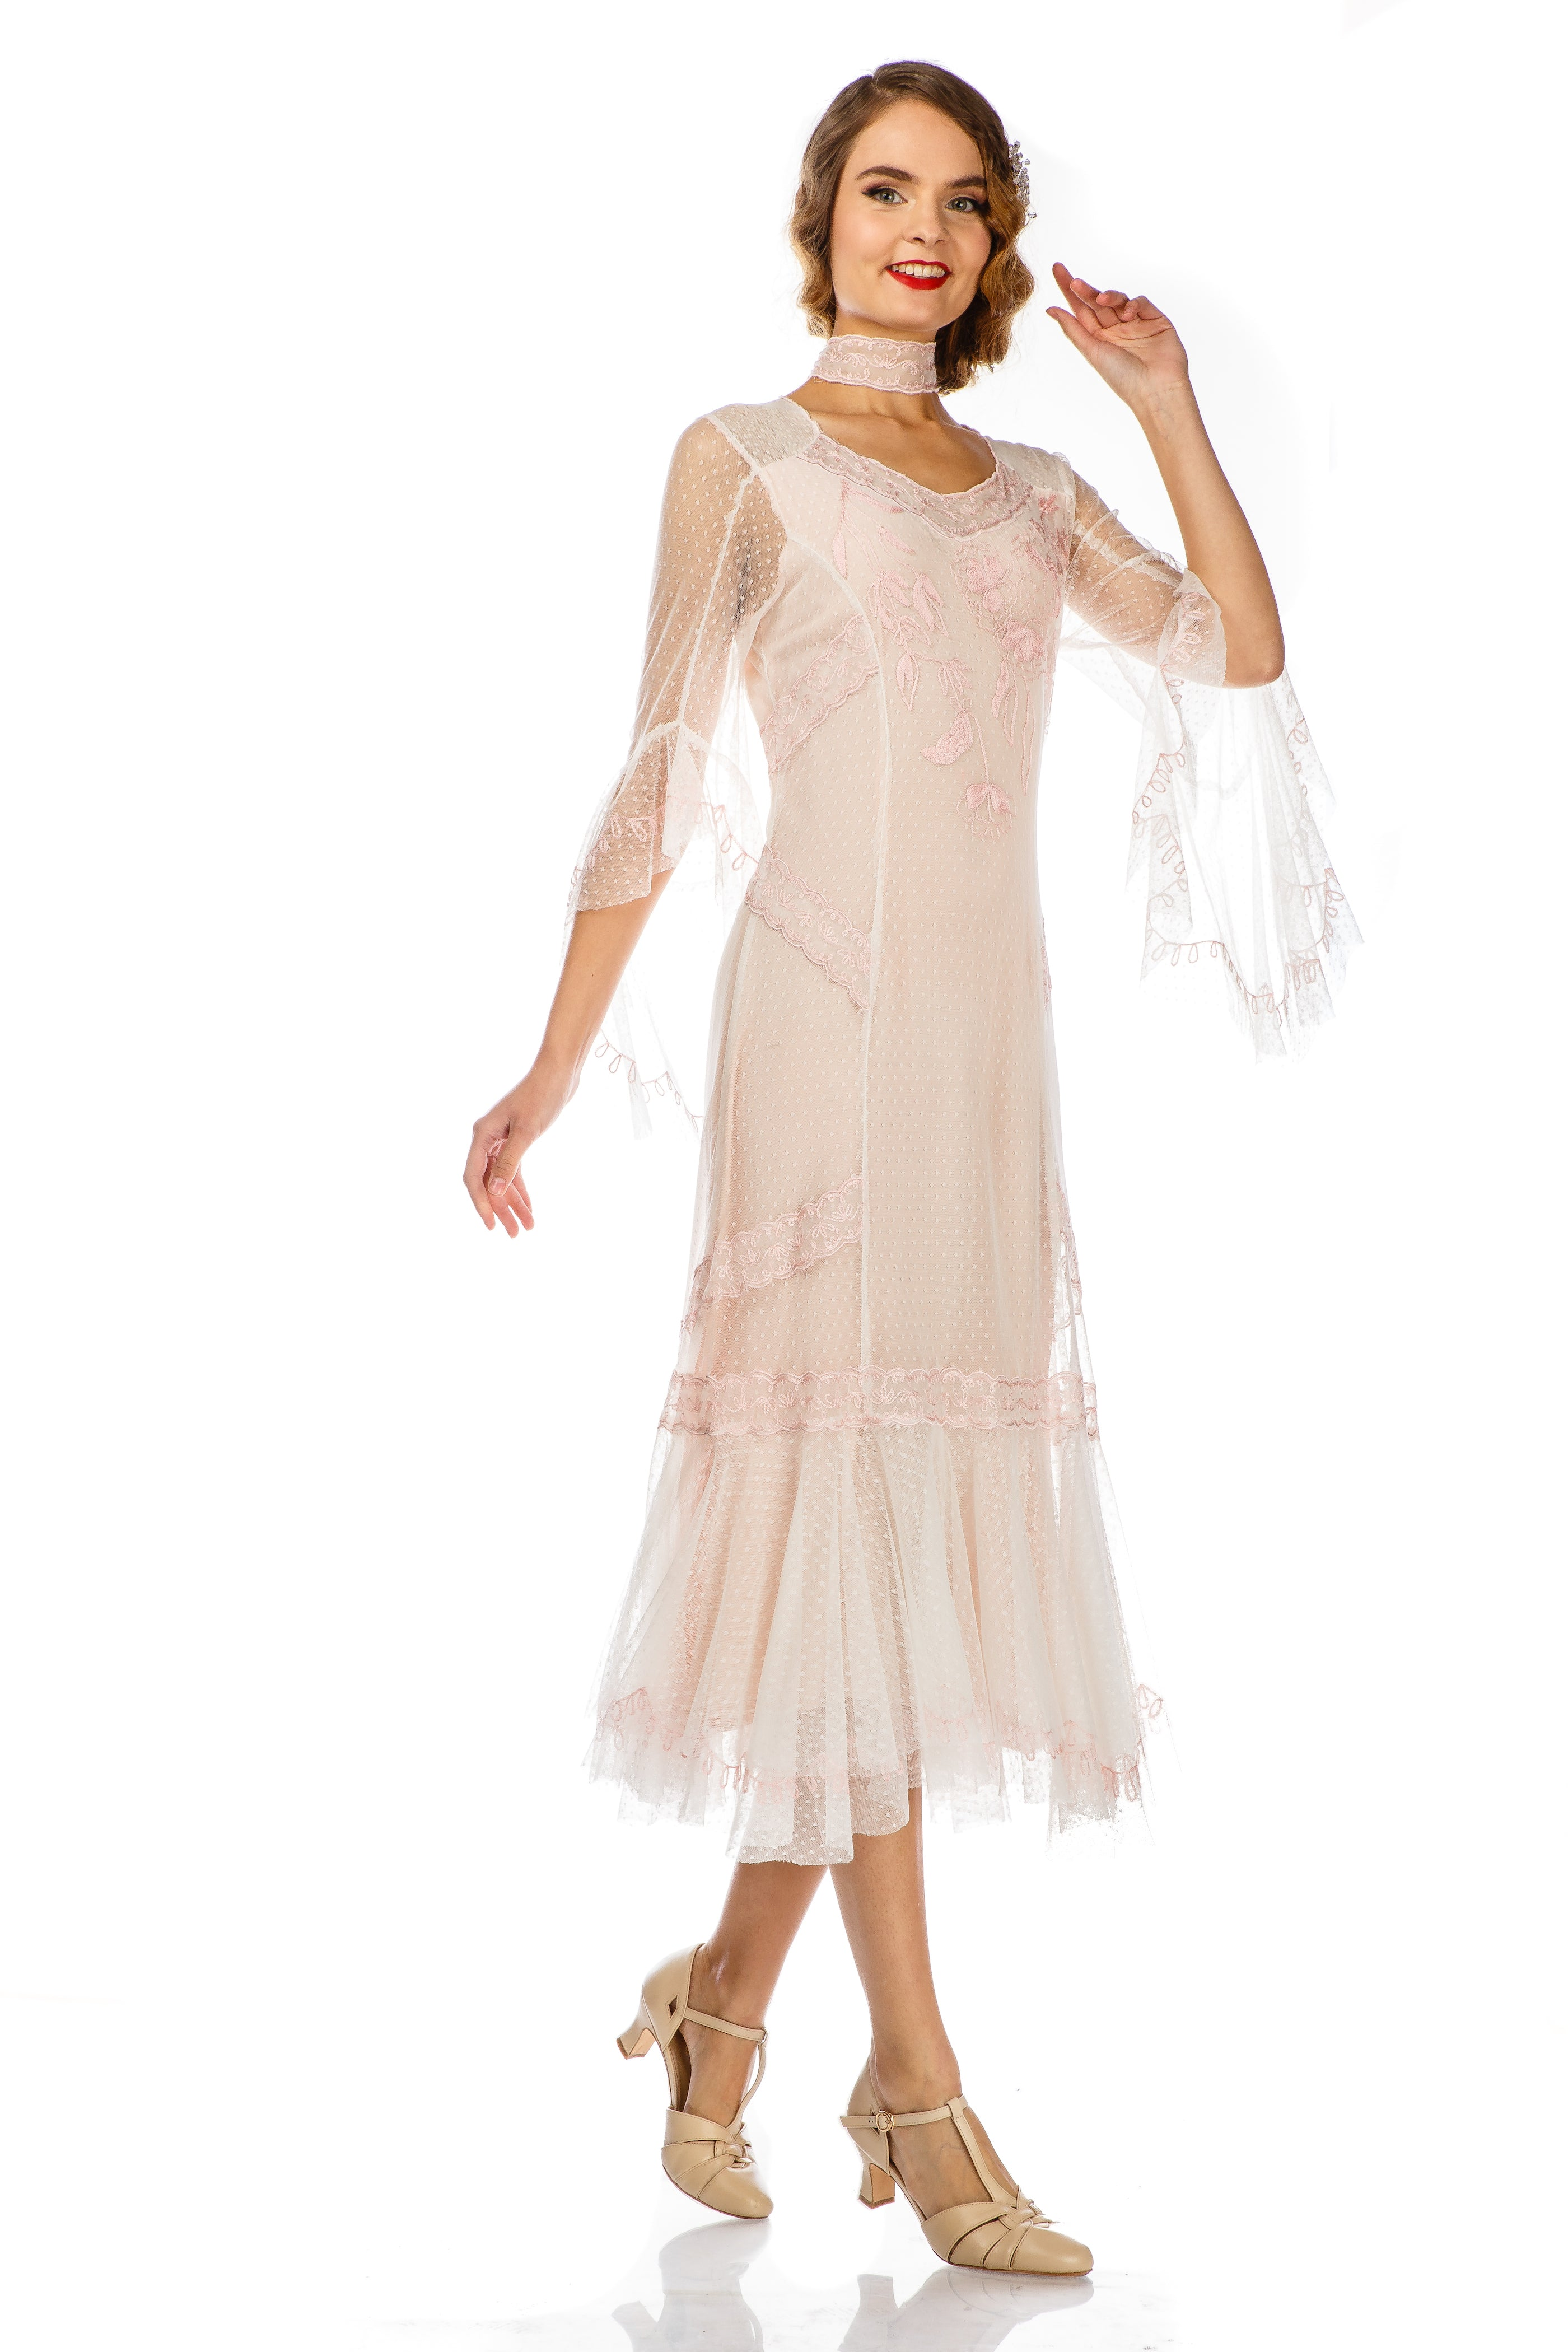 1920s Day Dresses History – Pictures of 20s Fashion  $275.00 AT vintagedancer.com